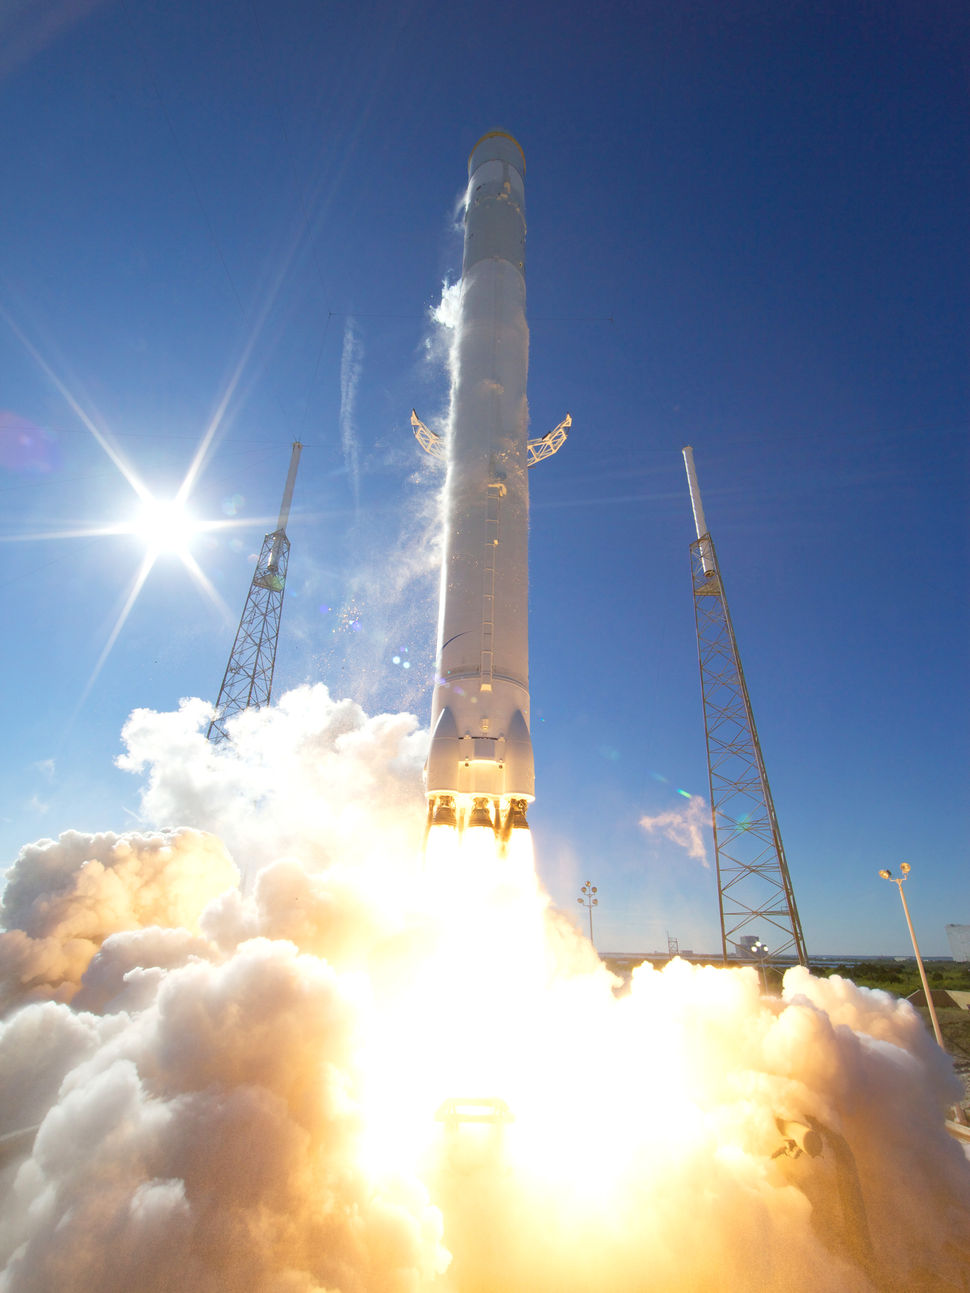 falcon_9_dragon_launch_12-8-10_credit_chris_thompson_spacex_2_0.jpg